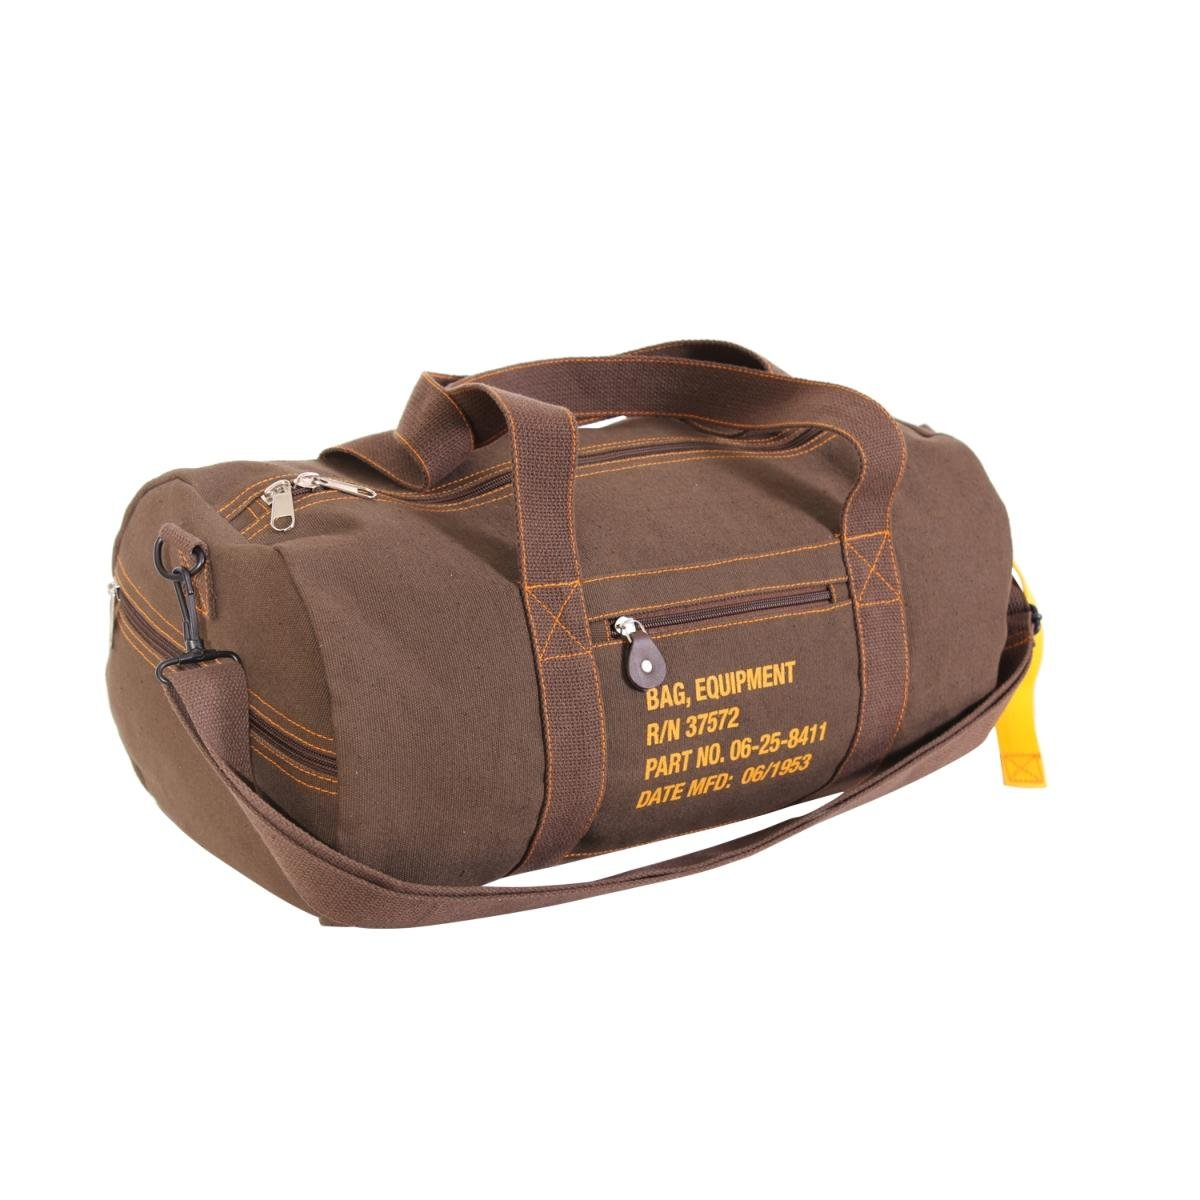 Rothco Canvas Equipment Bag, Earth Brown by Rothco (Image #1)